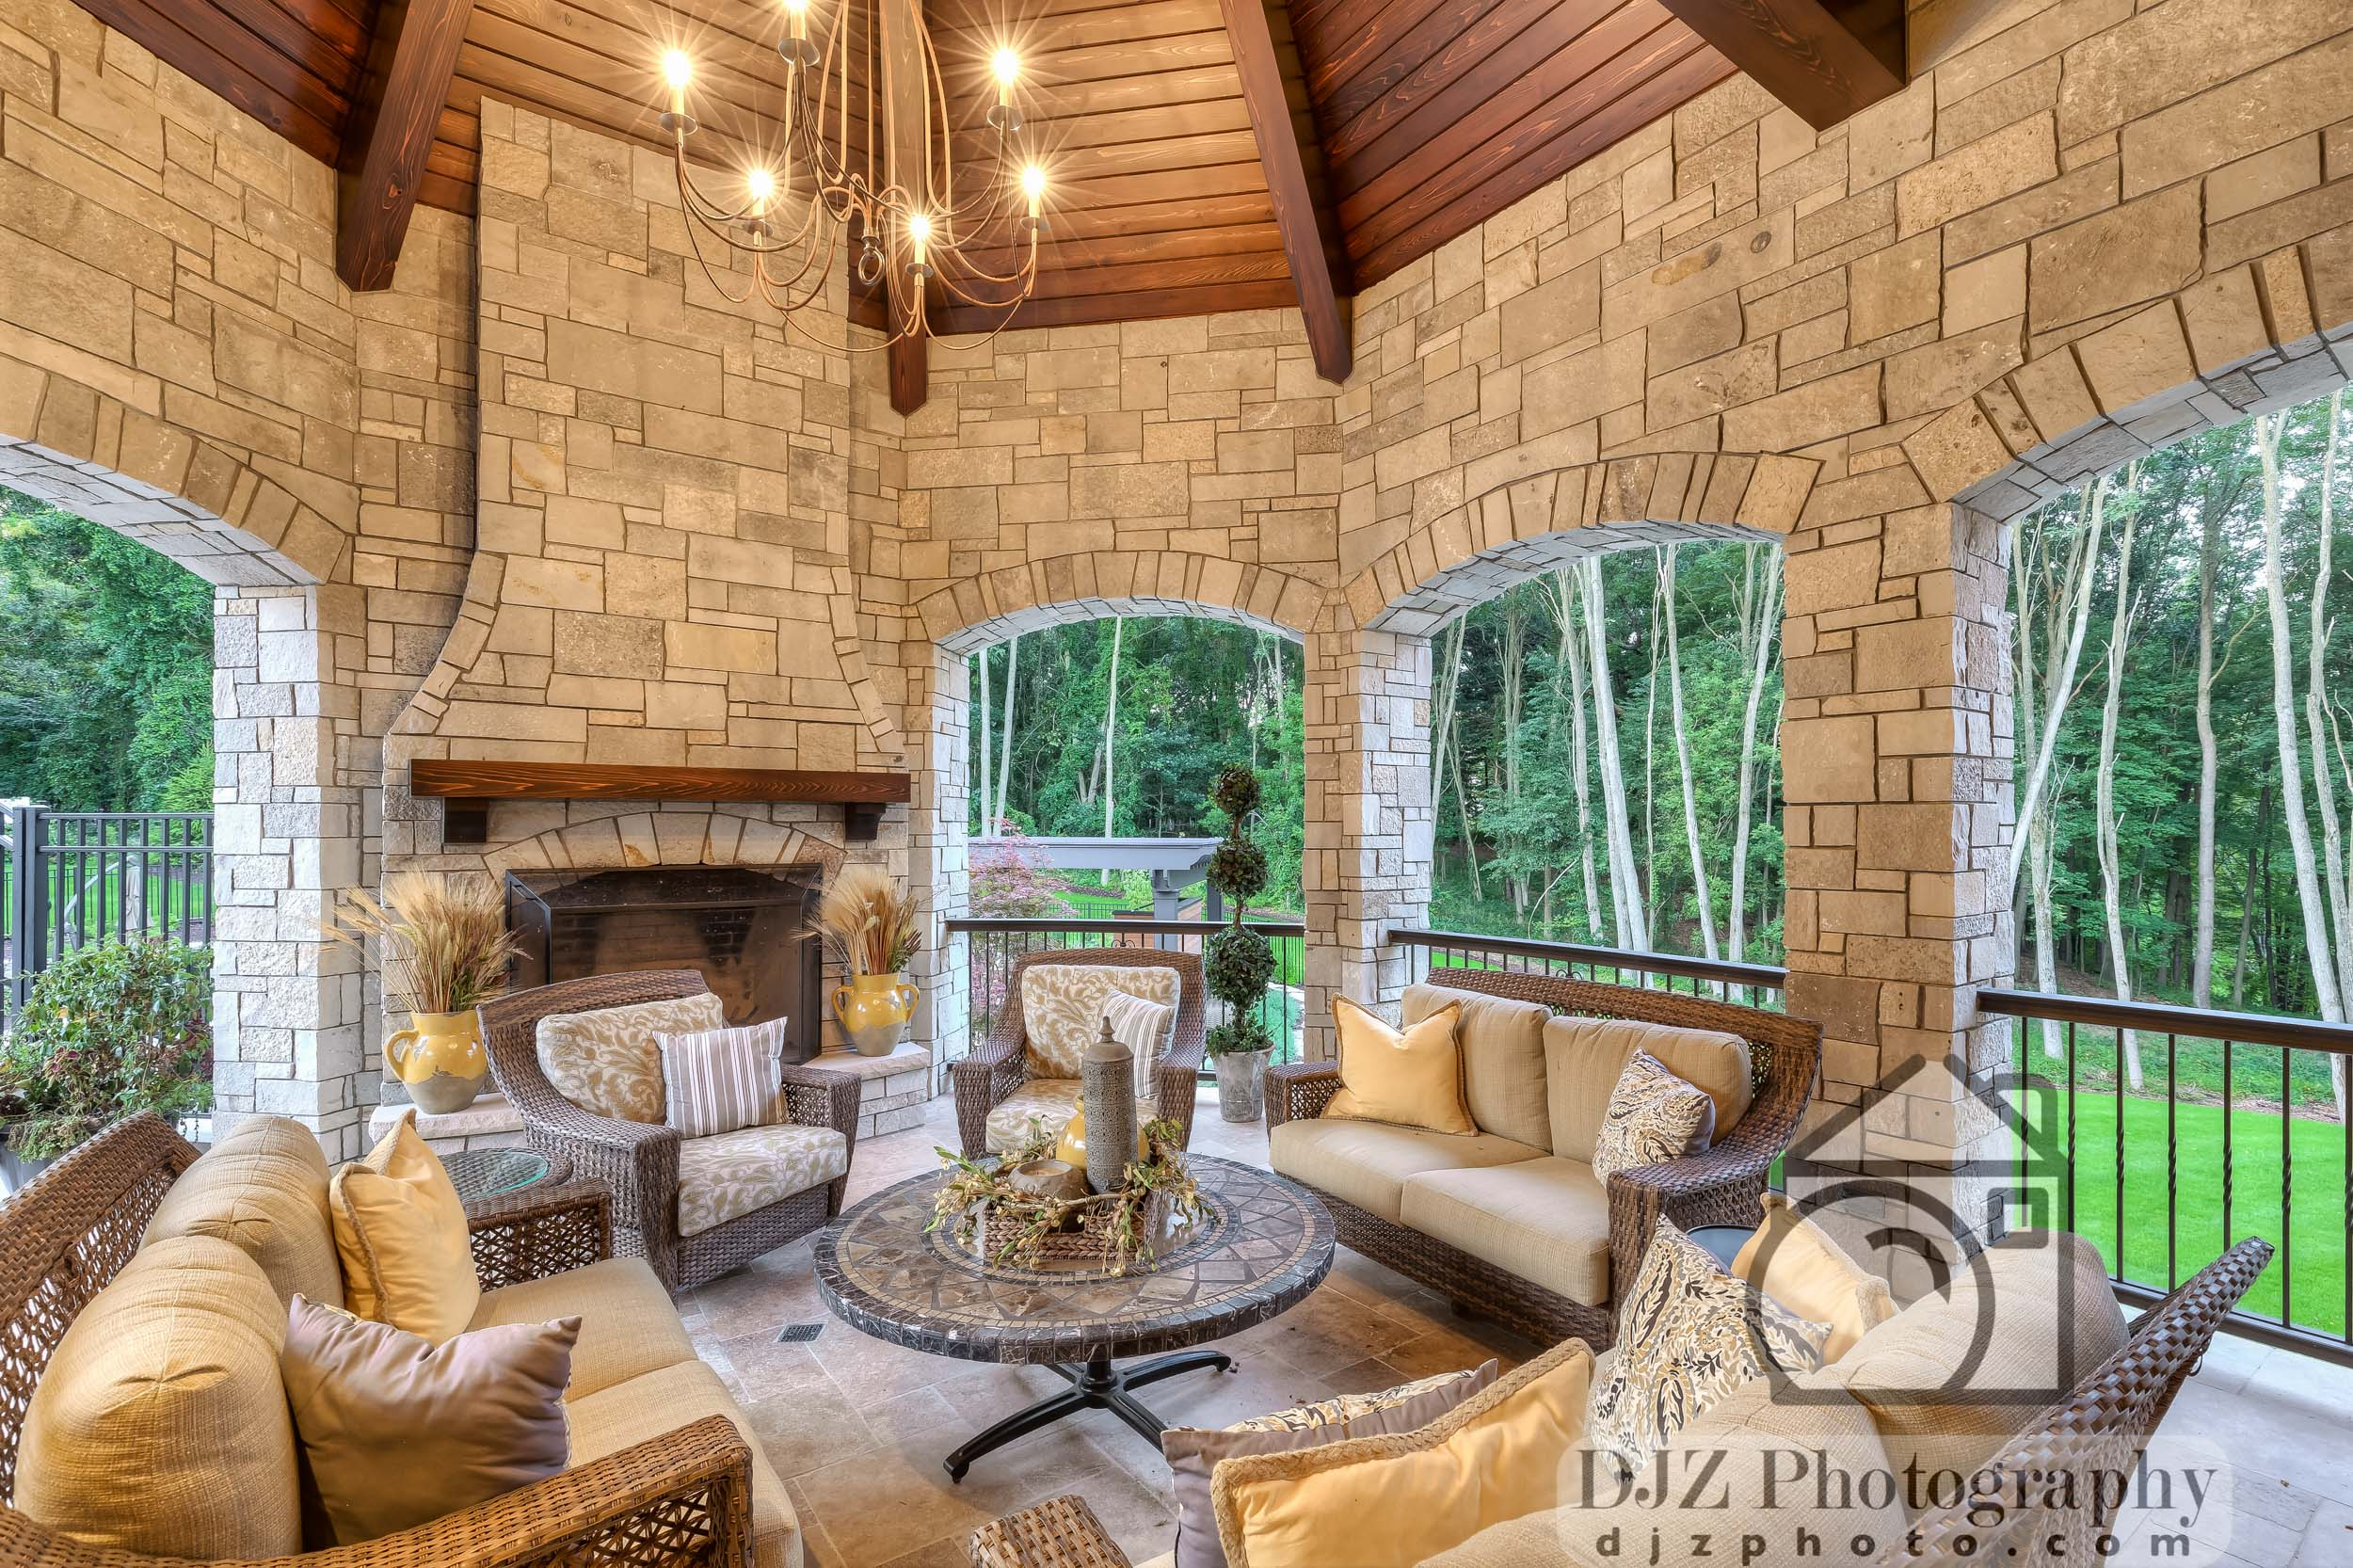 Fireplace on the Patio - Real Estate Photography